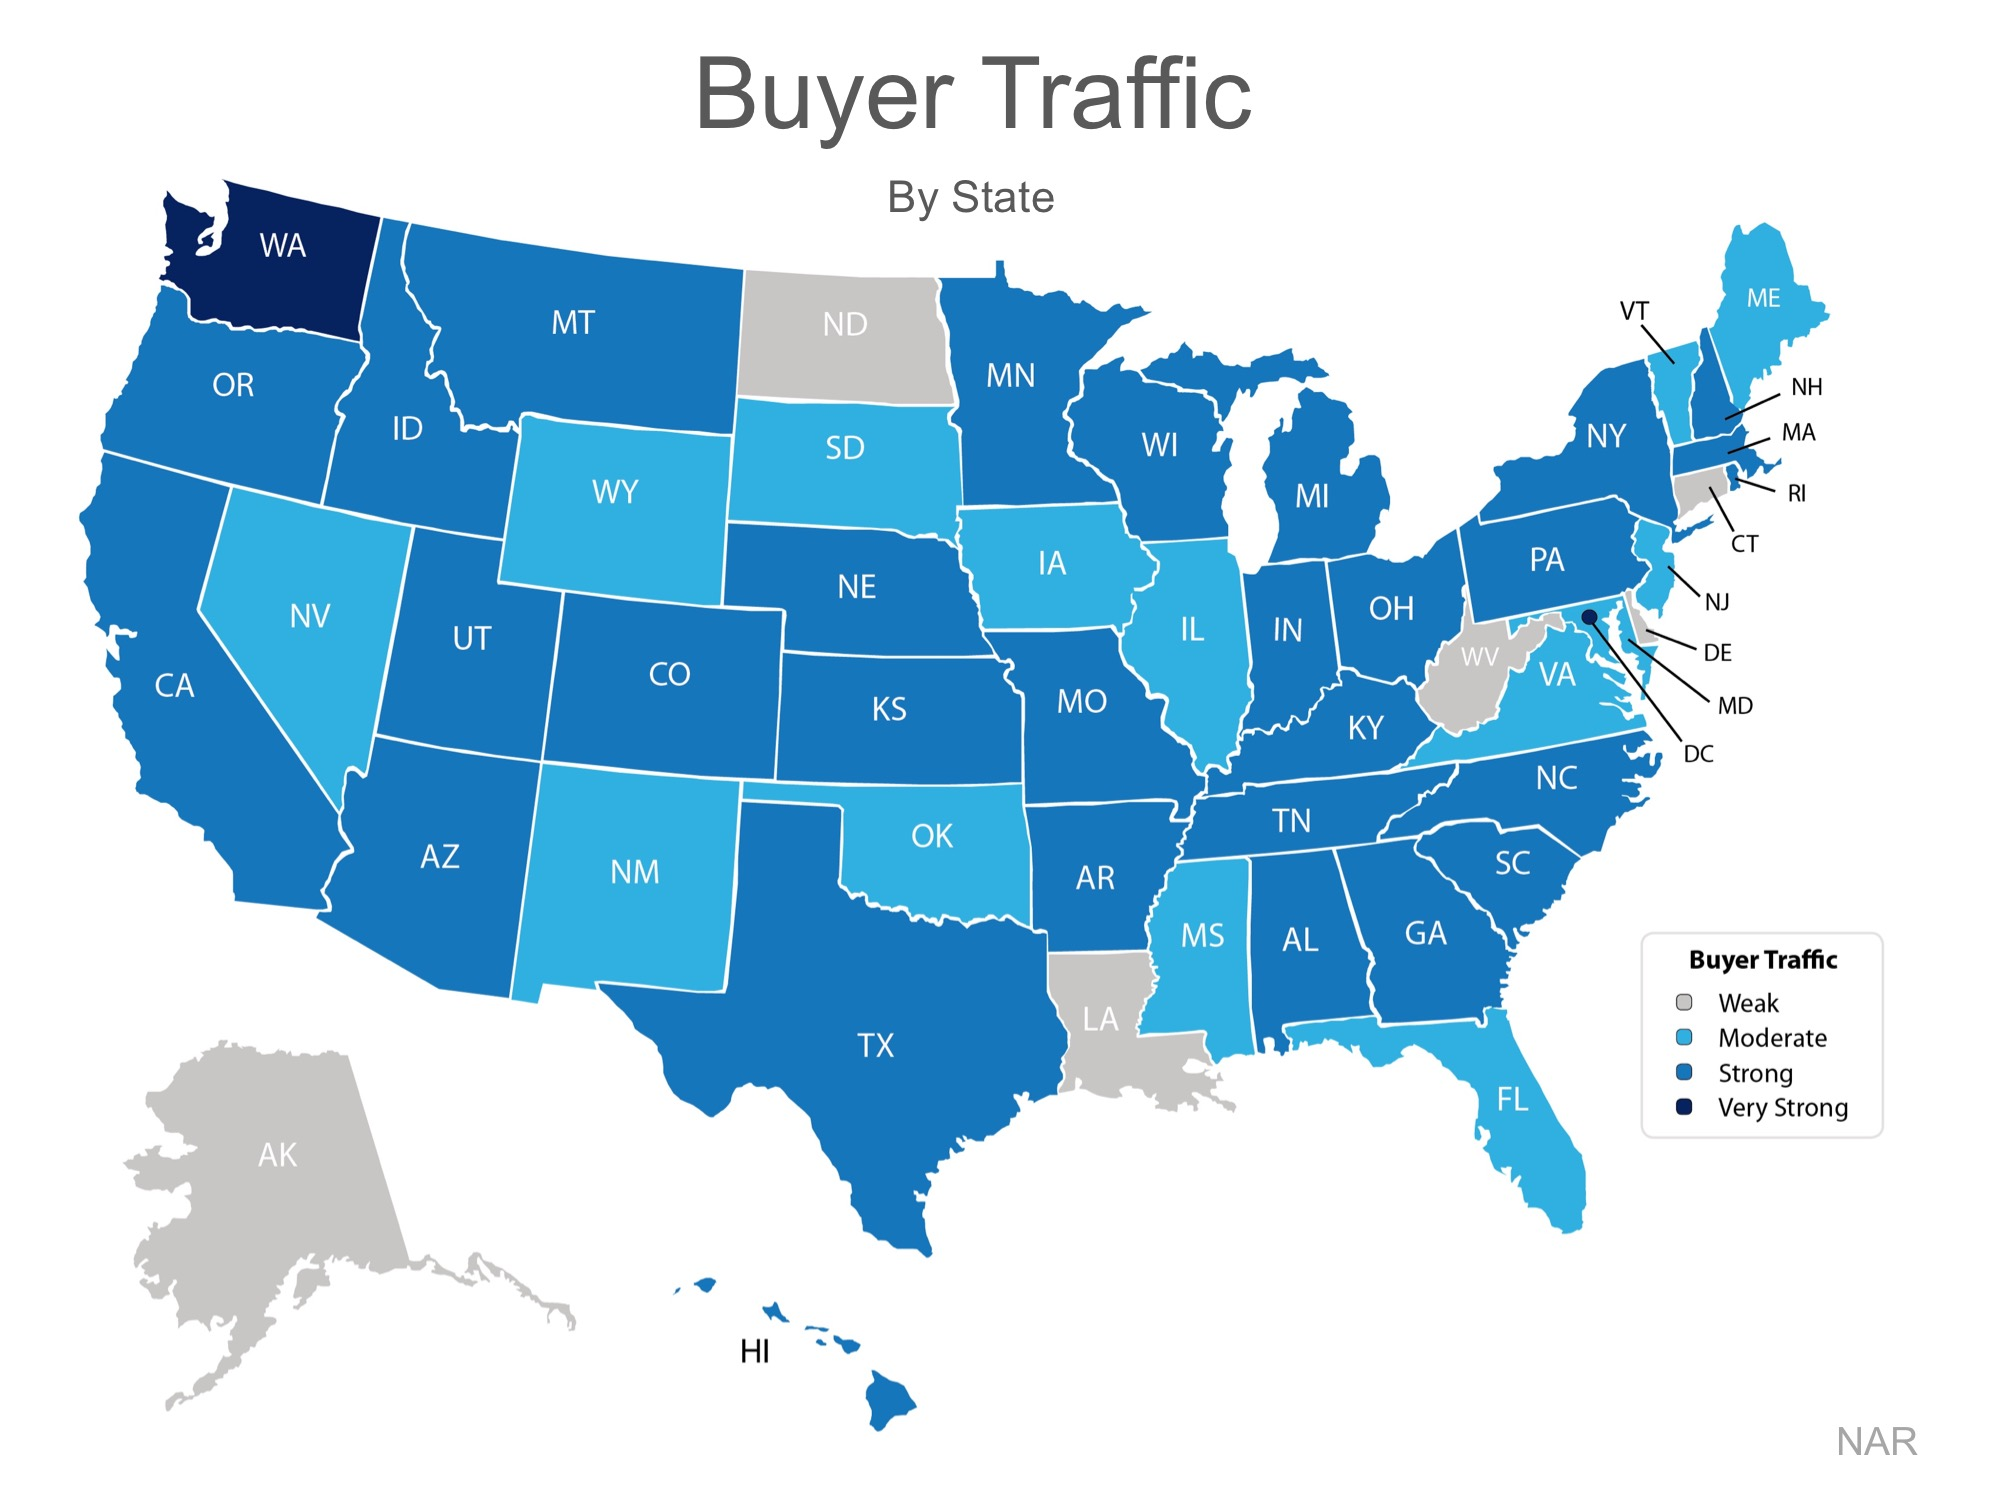 Home Buyer Traffic By State